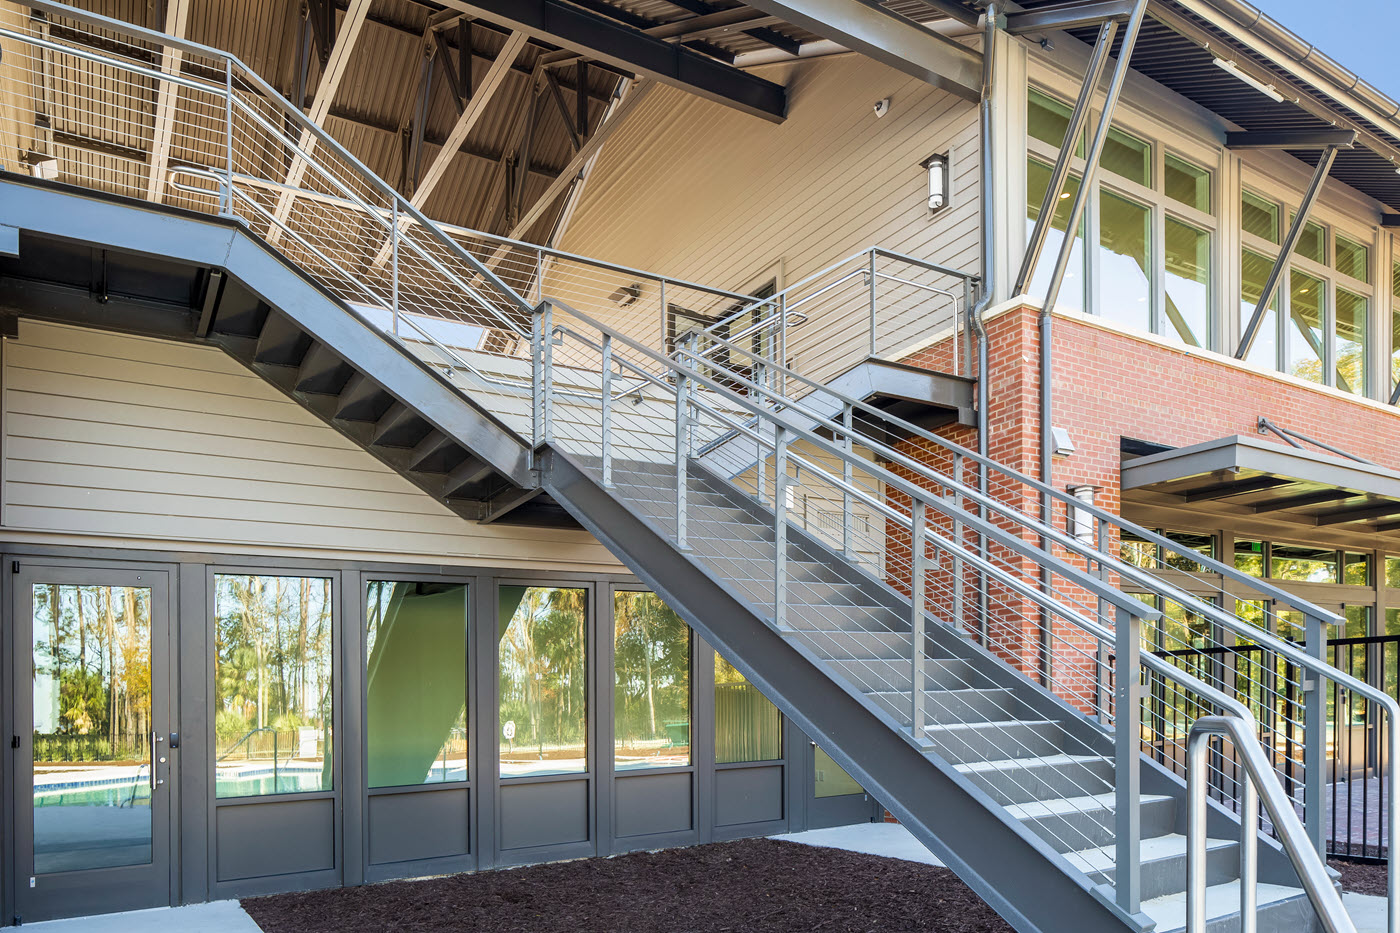 Split Exterior Staircase with Commercial Cable Railings and ADA handrails.